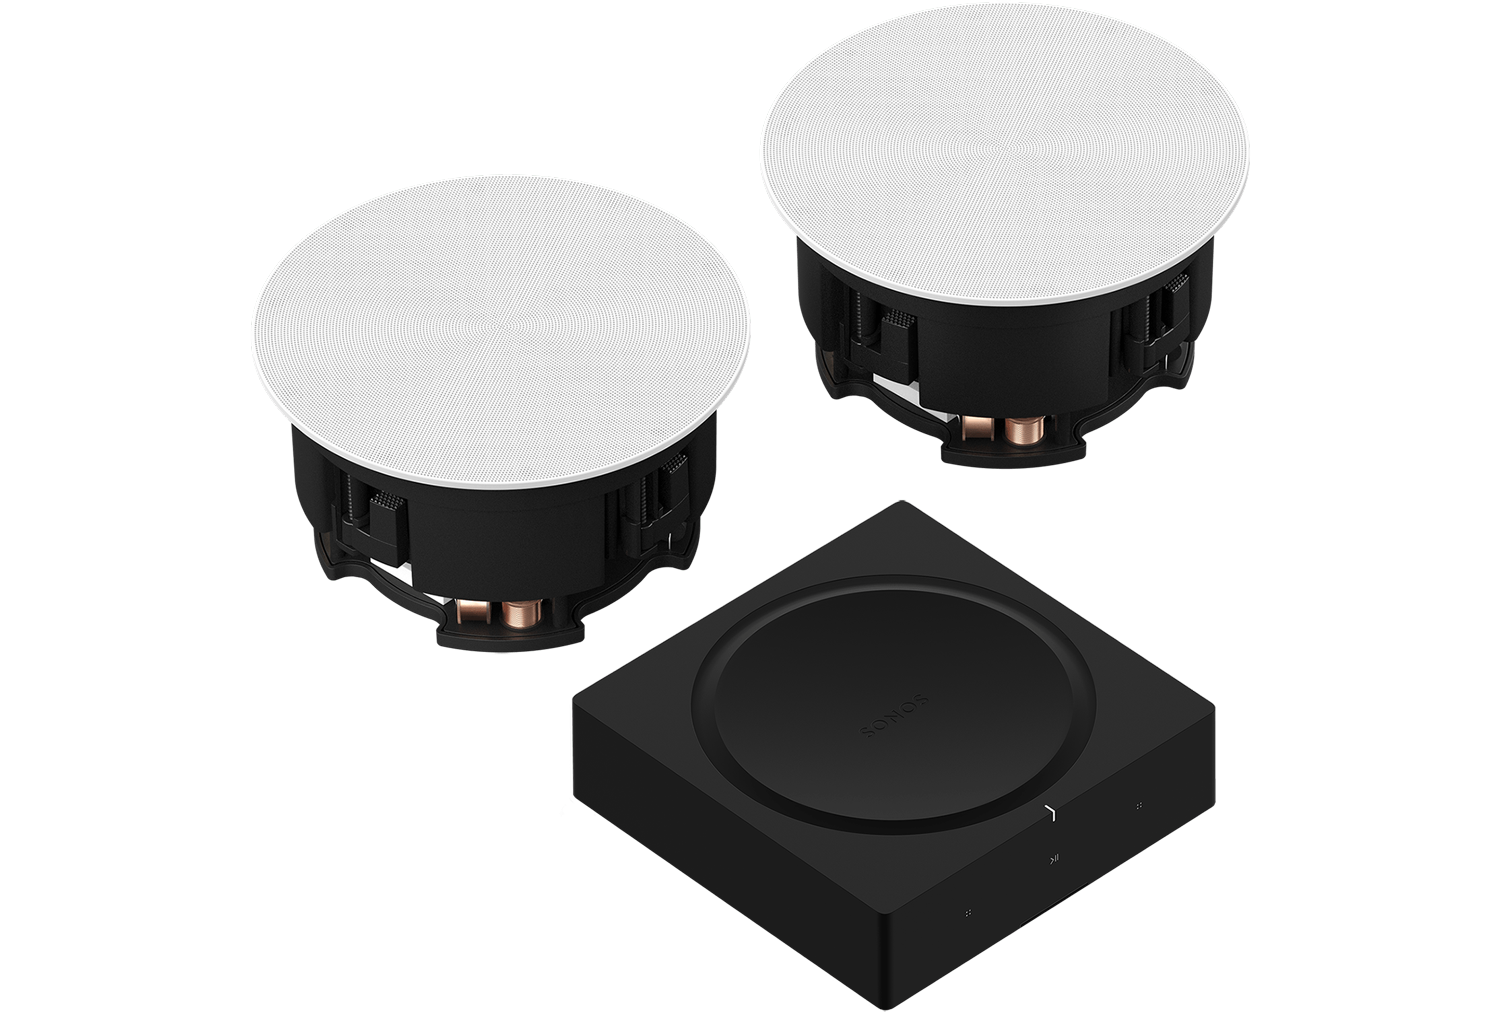 In-Ceiling Speakers & Amp Set - Architectural Speakers - Customizable Grilles - Sonos